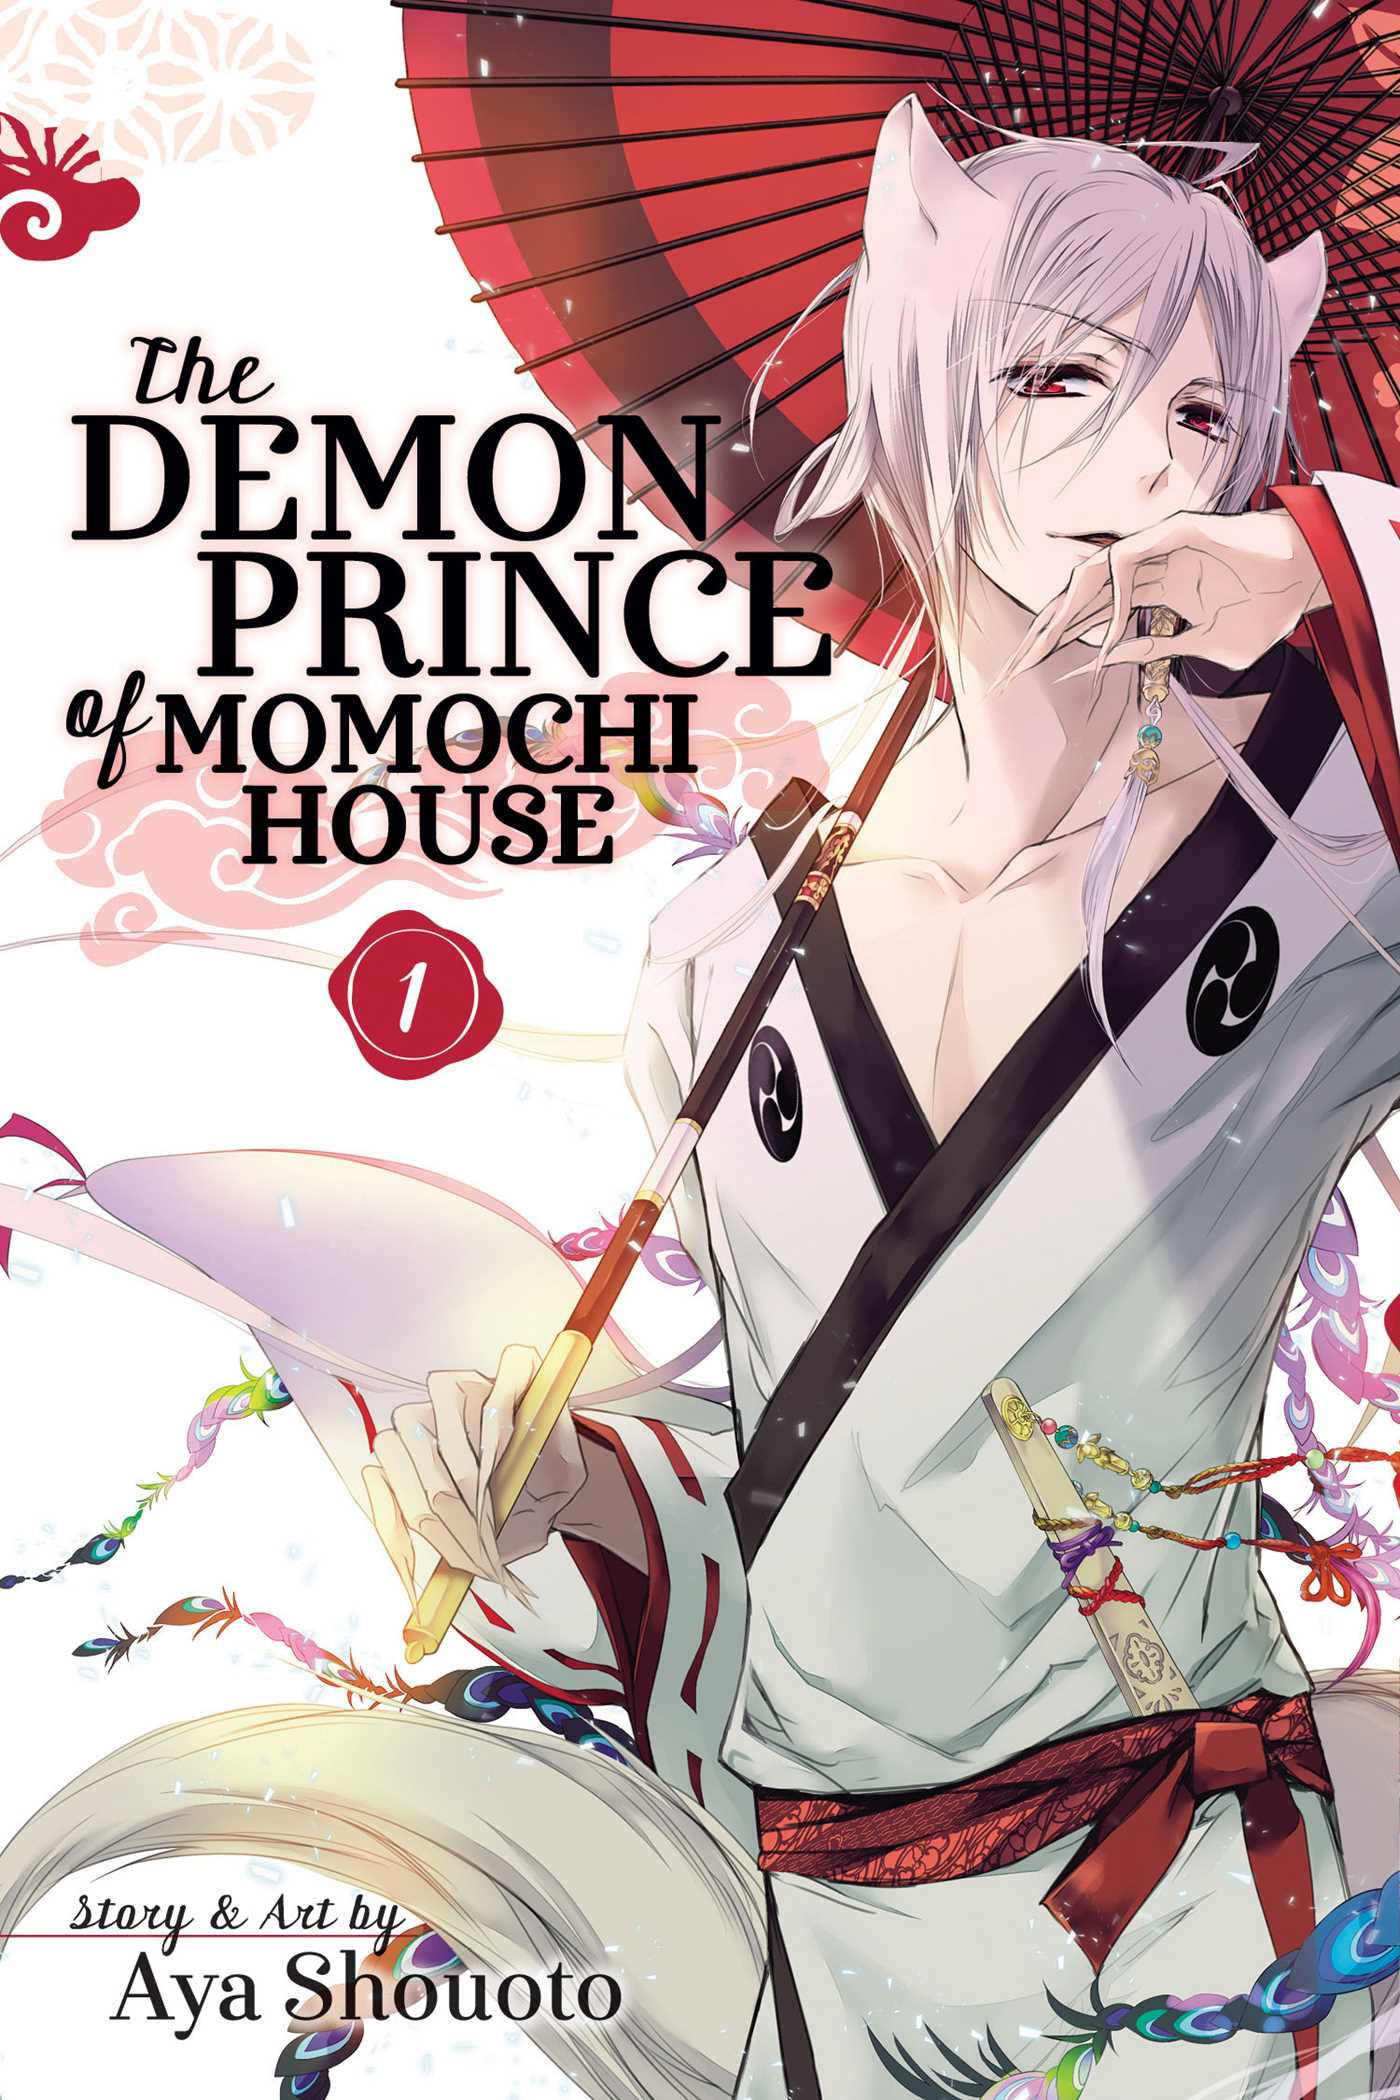 The Demon Prince Of The Momochi Hous